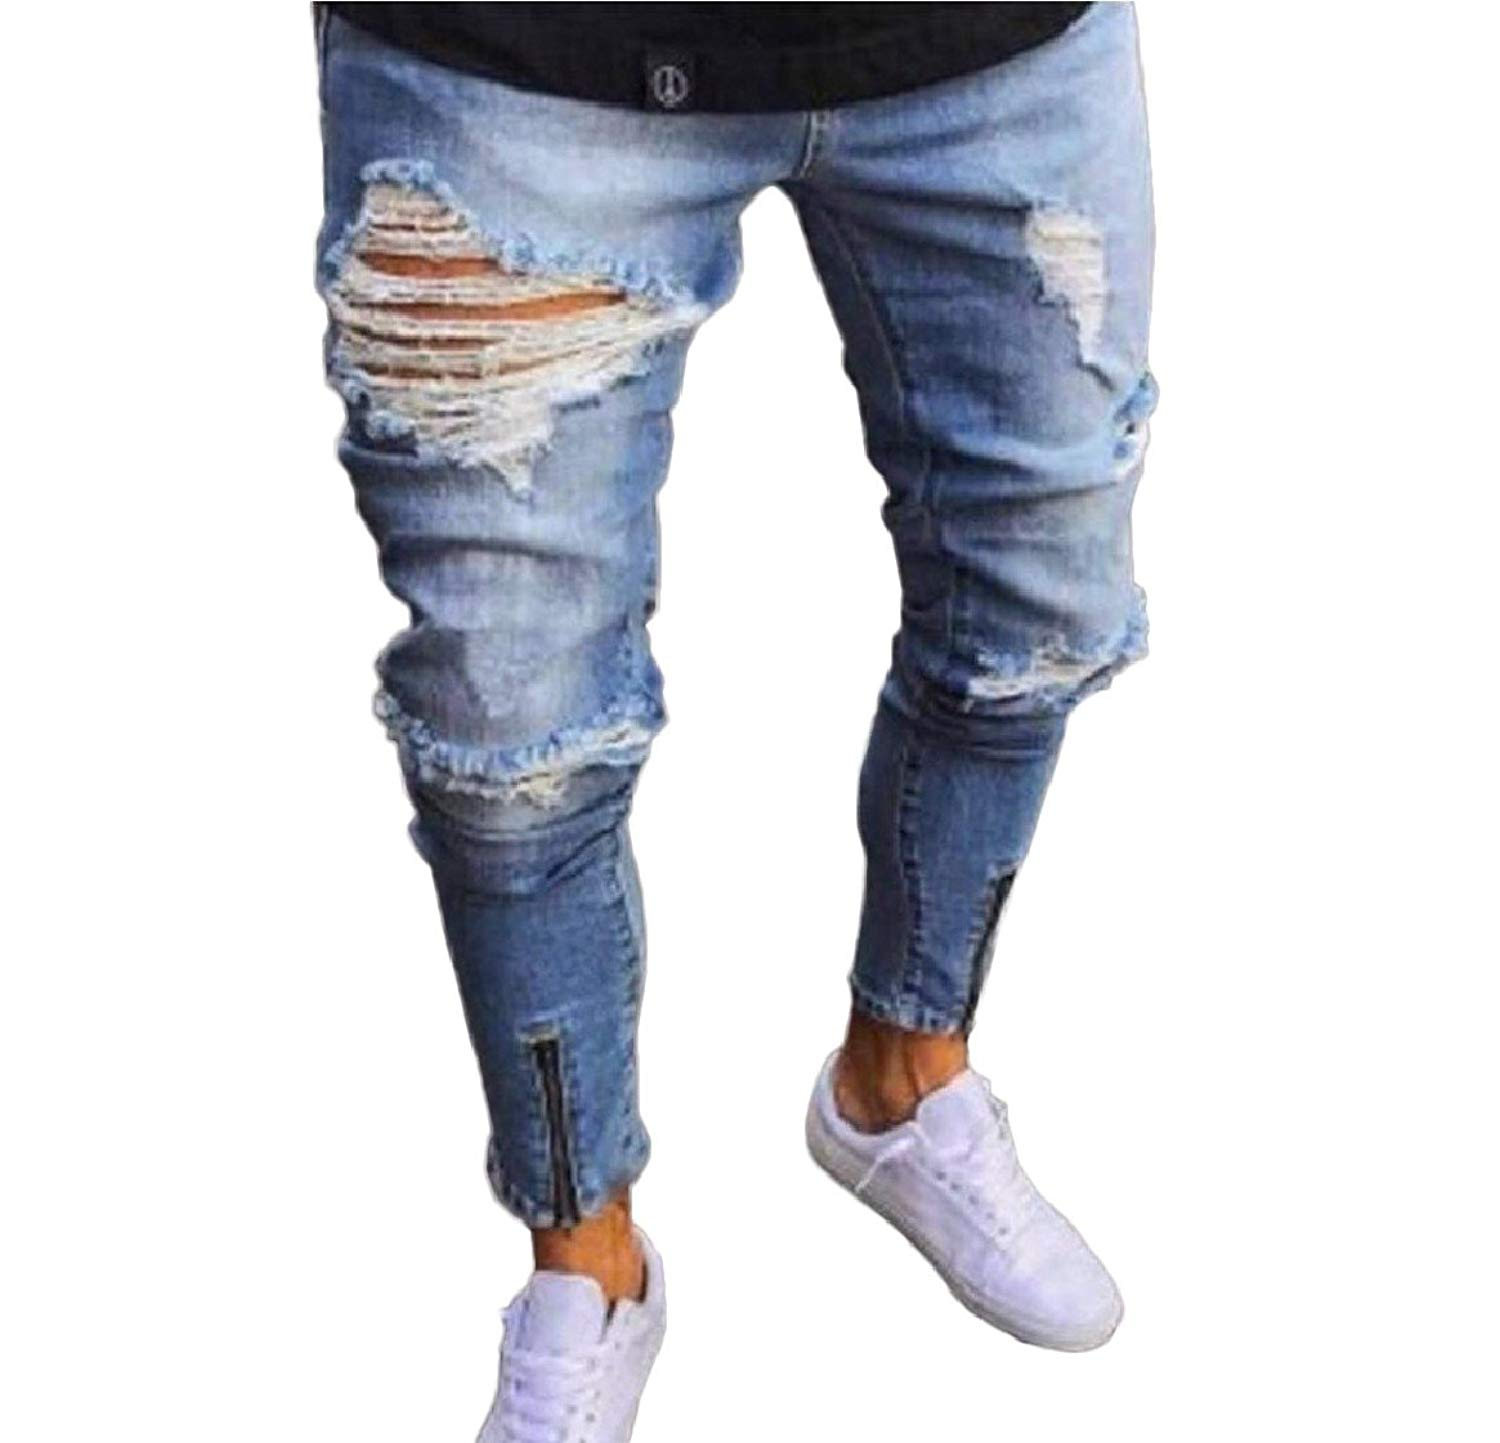 e1a1954afc Get Quotations · Abetteric Mens Low Rise Zip up Ripped Hole Stretchy  Tapered Jeans Trousers